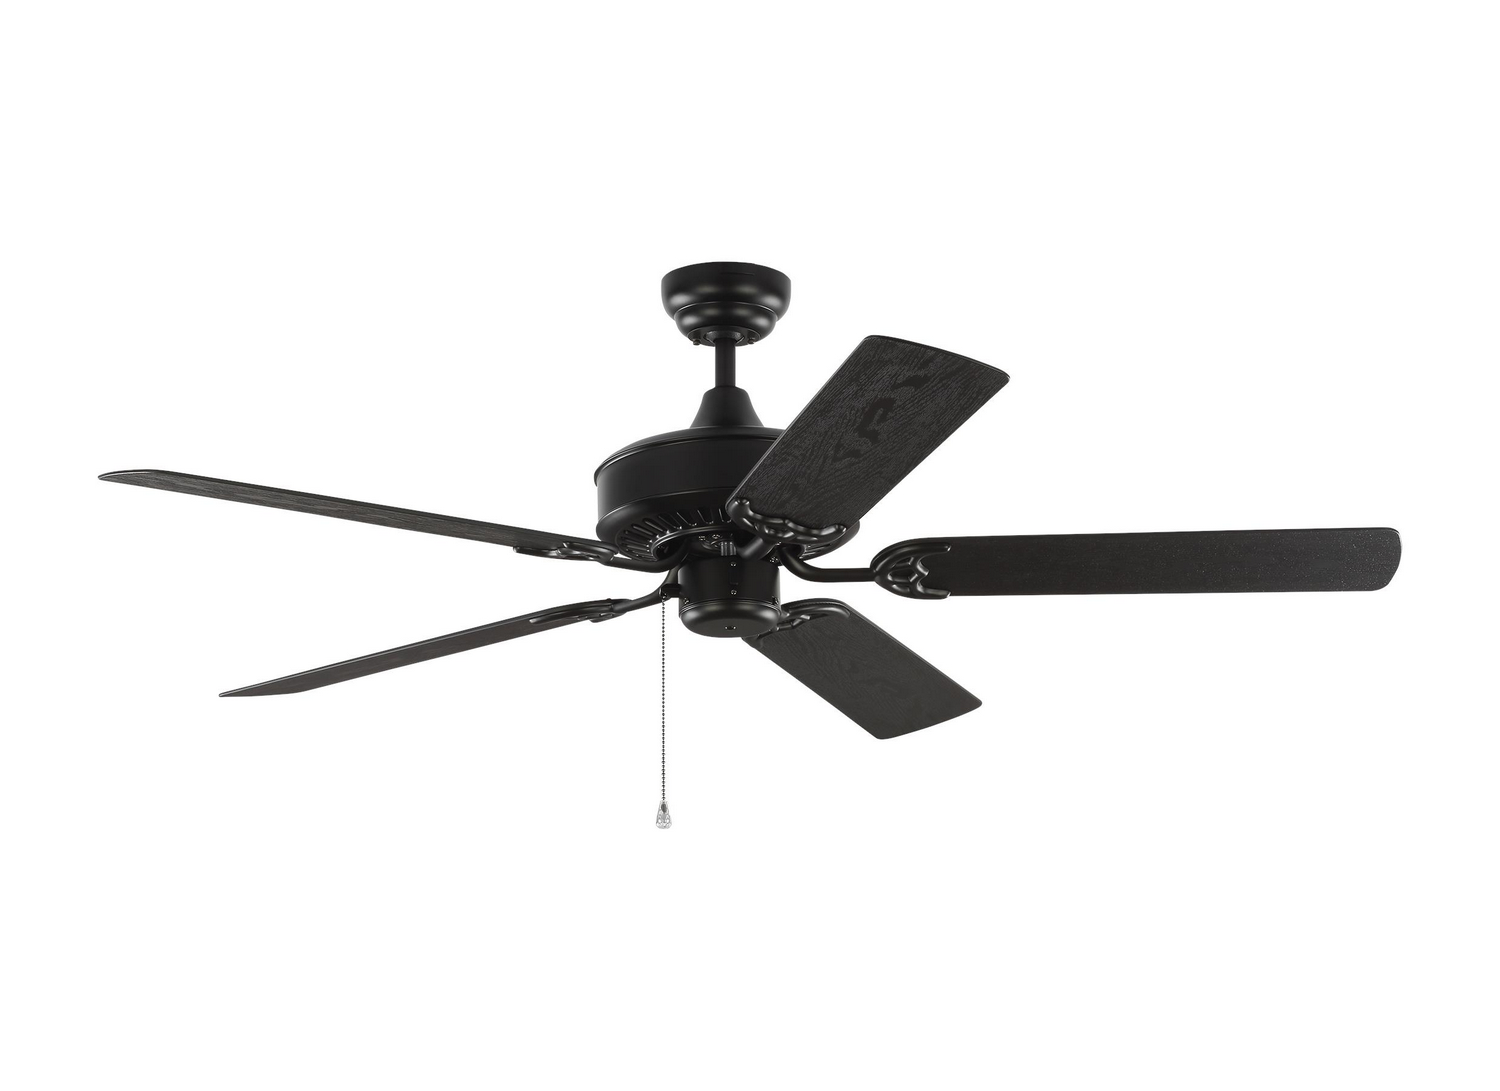 52 inchCeiling Fan from the Haven 52 Outdoor collection by Monte Carlo 5HVO52BK